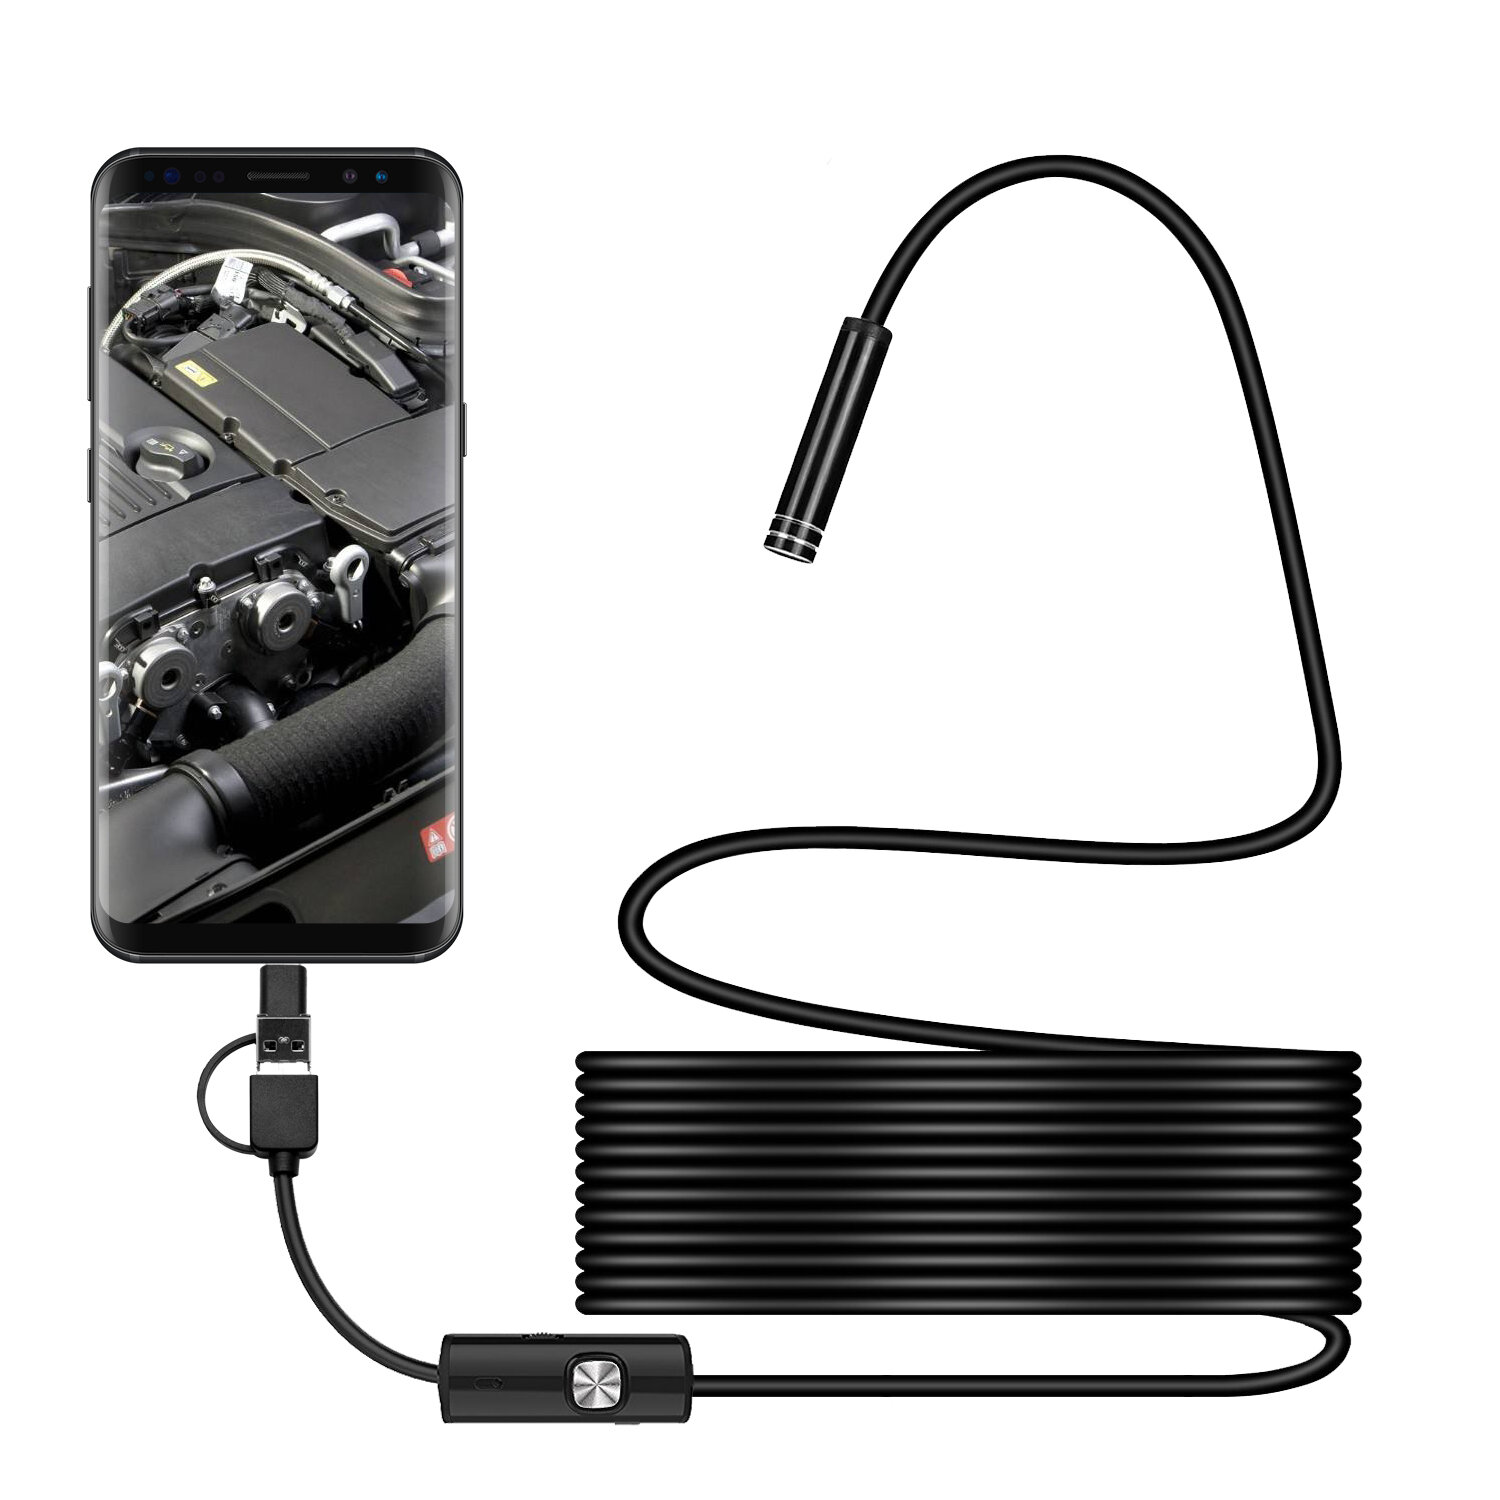 Portable Car OTG 7mm USB Endoscope Inspection Camera With 6 LED For Android 4.0